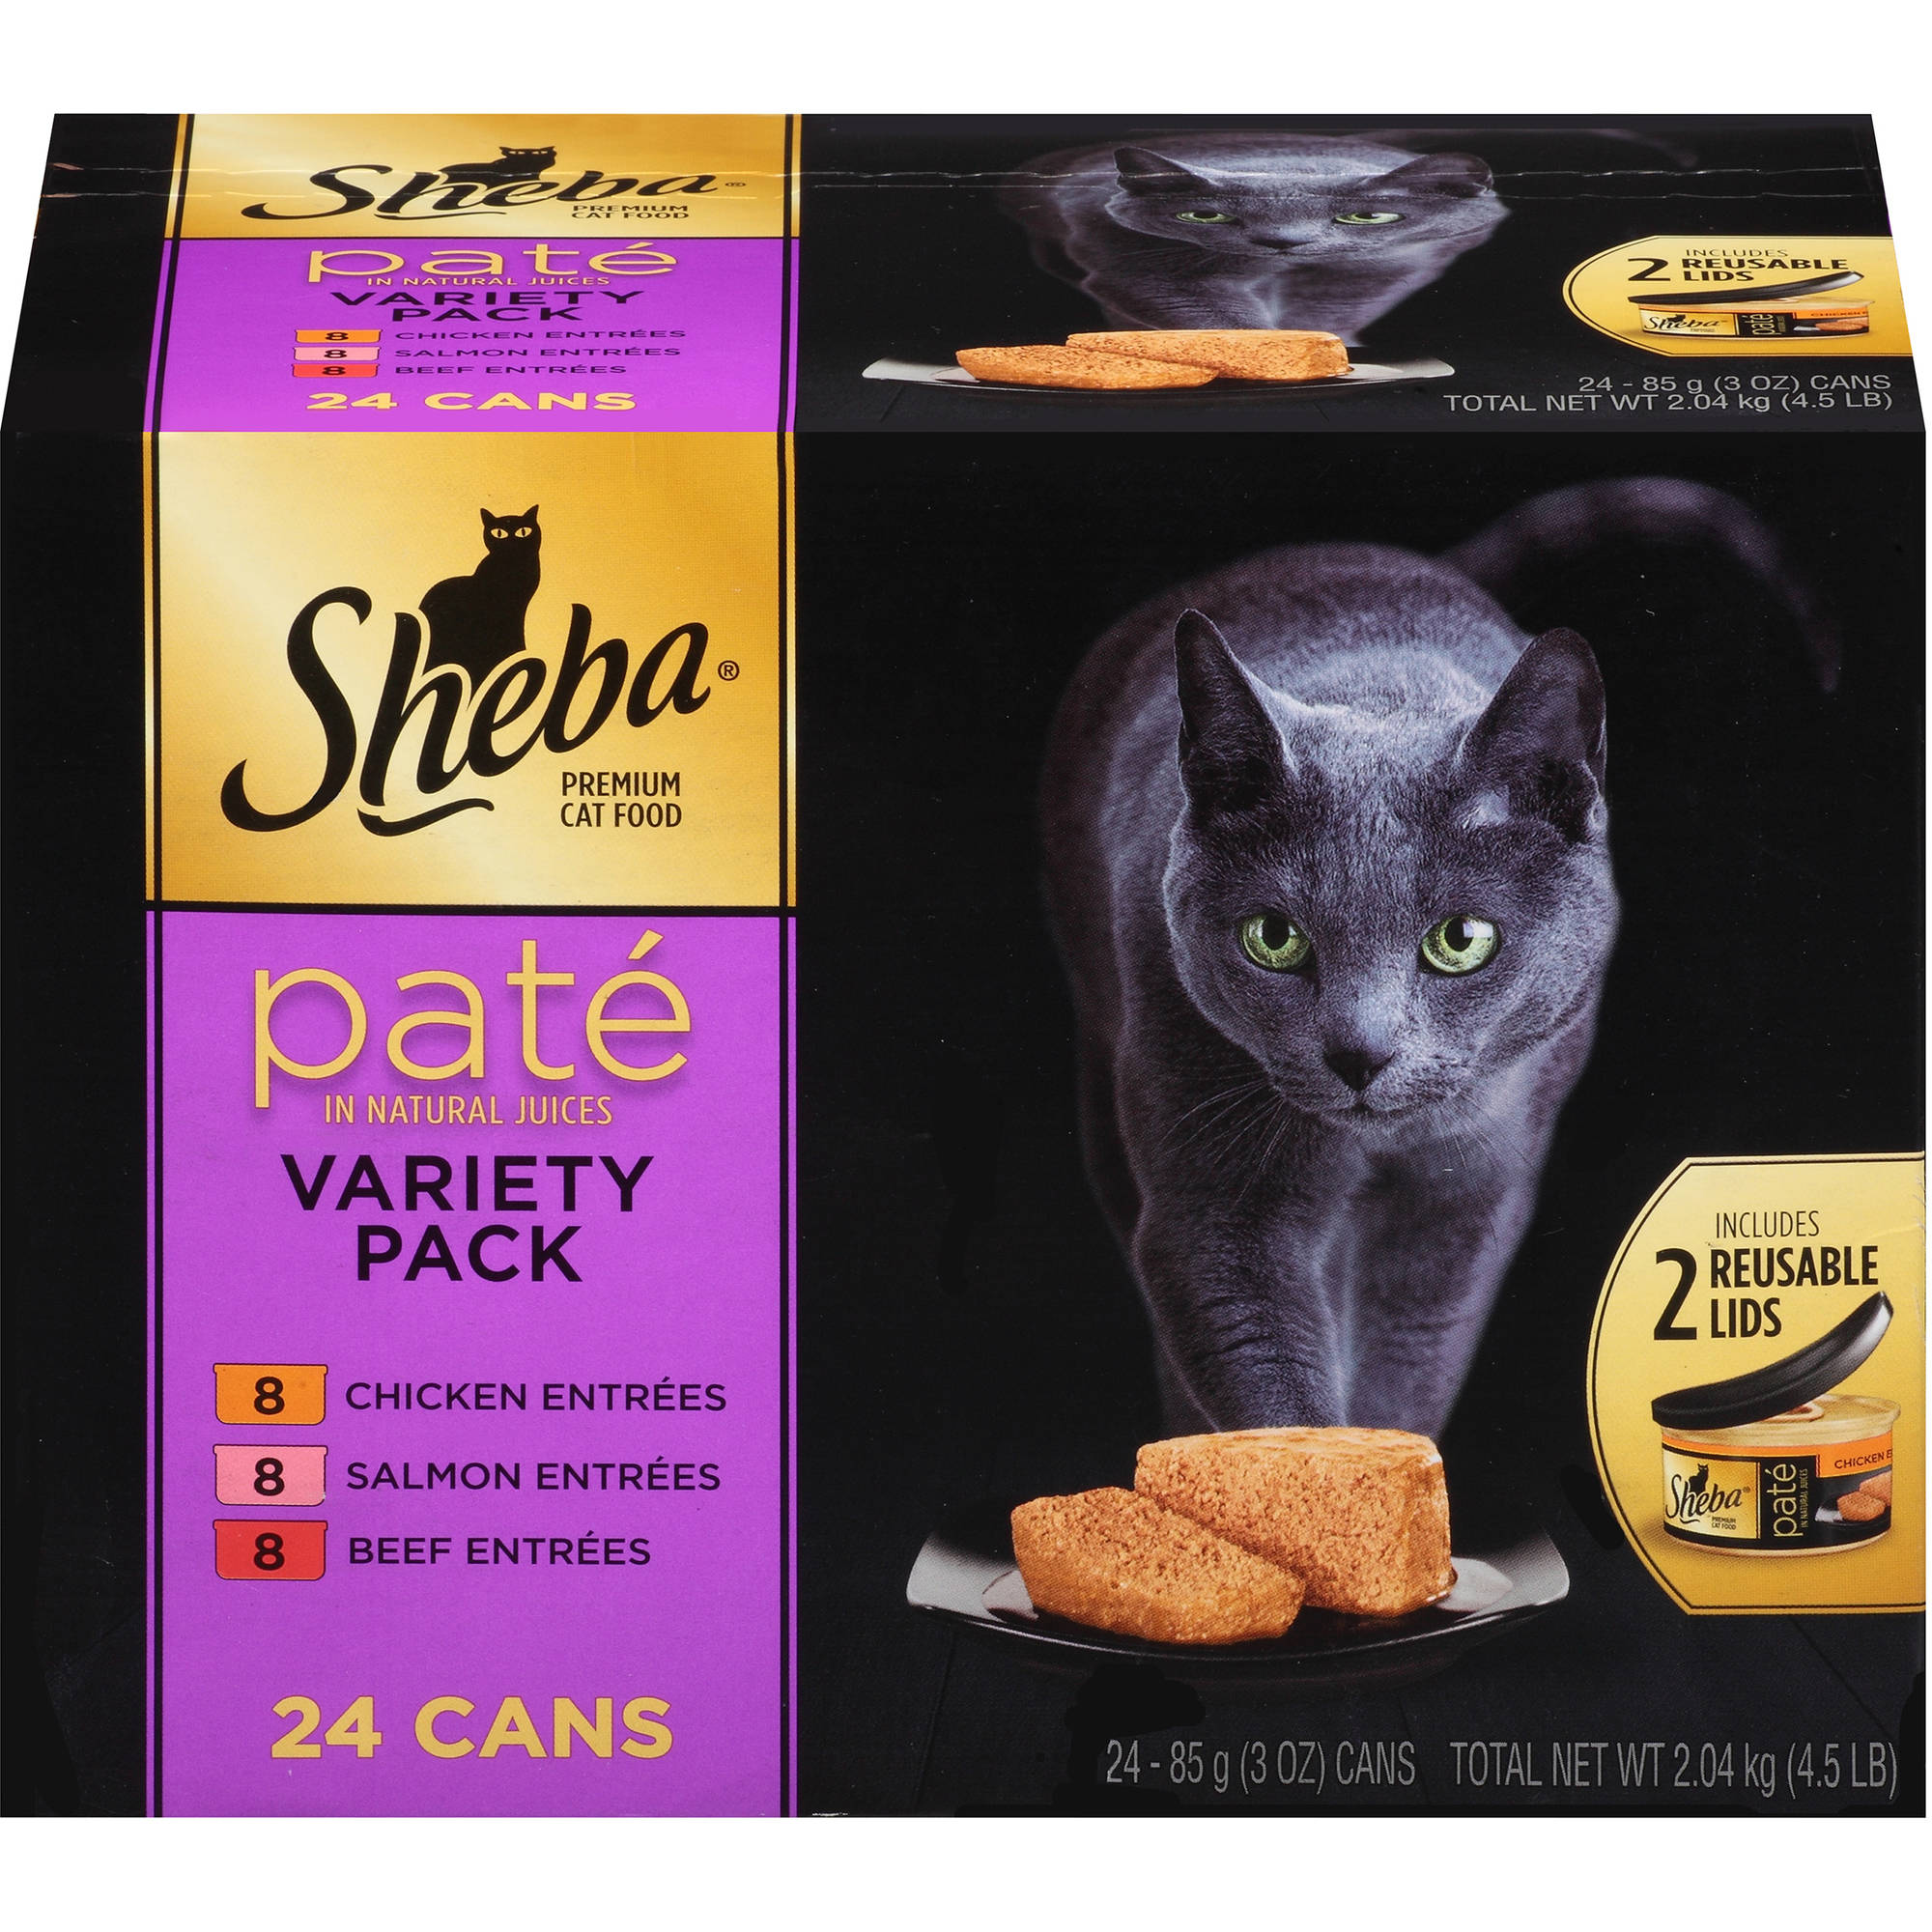 Sheba Variety Pack Premium Pate Premium Canned Cat Food, 3 oz, 24-Pack